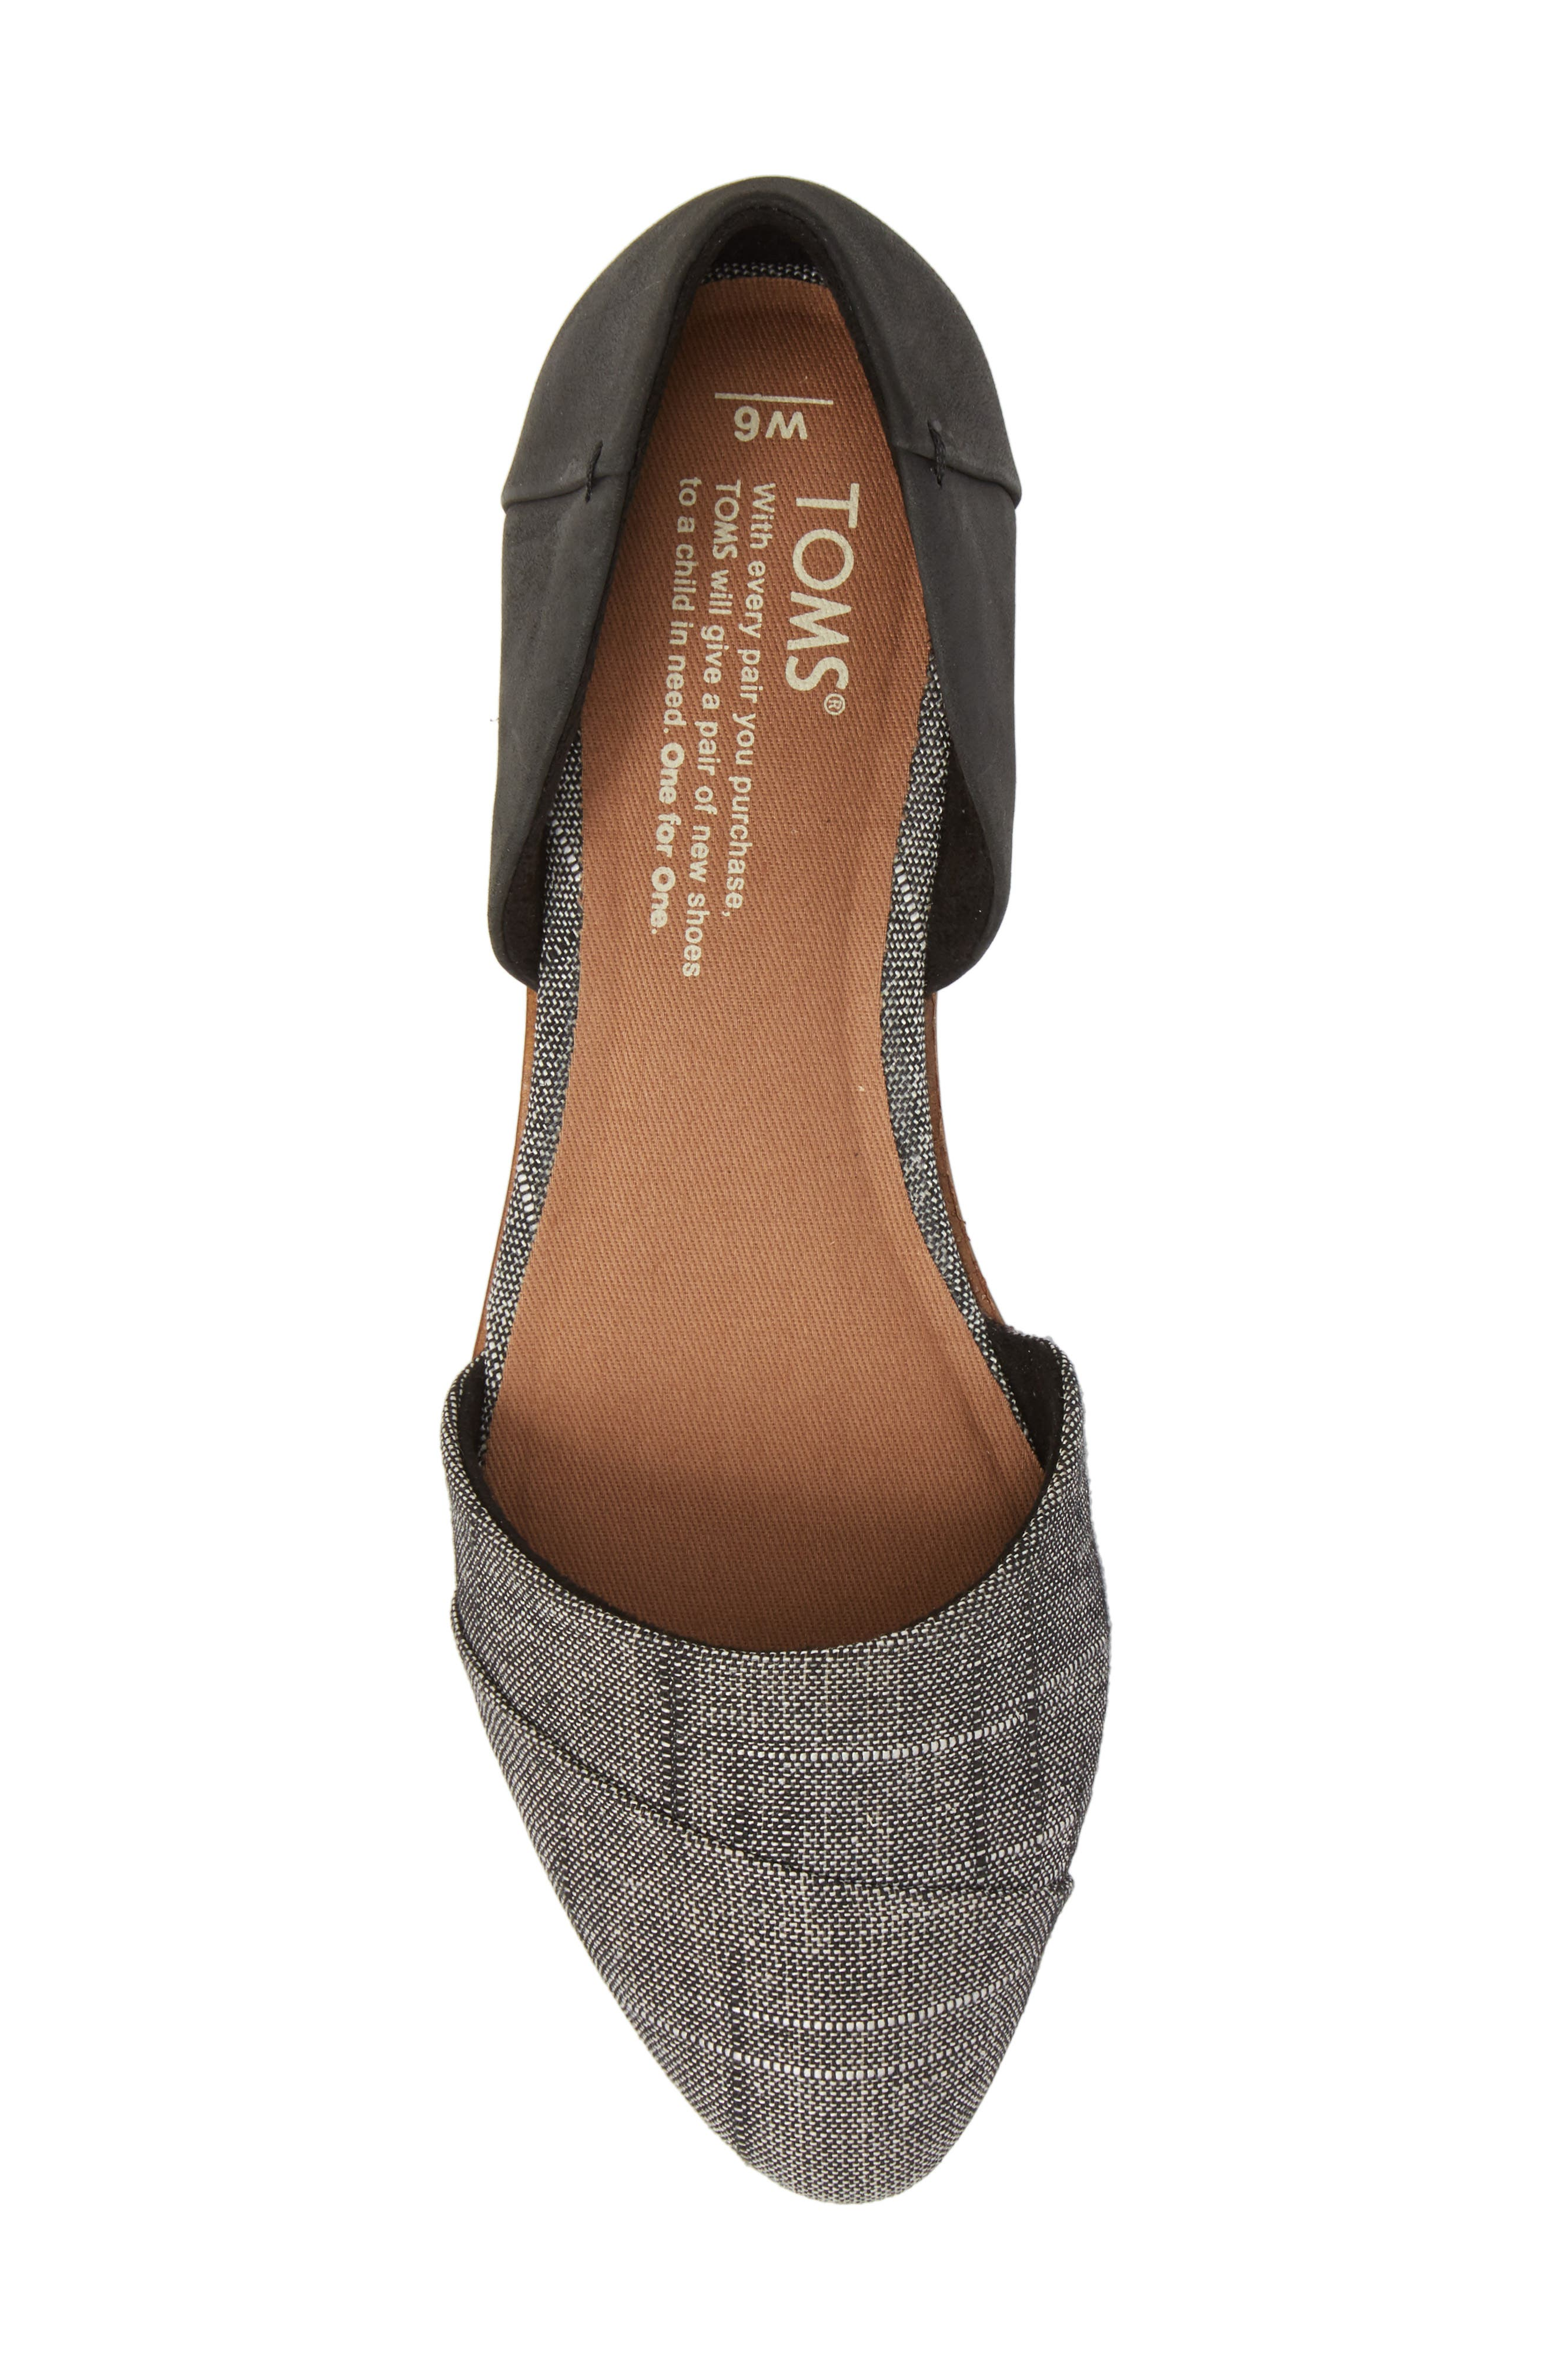 Jutti d'Orsay Flat,                             Alternate thumbnail 5, color,                             BLACK LEATHER/ CHAMBRAY